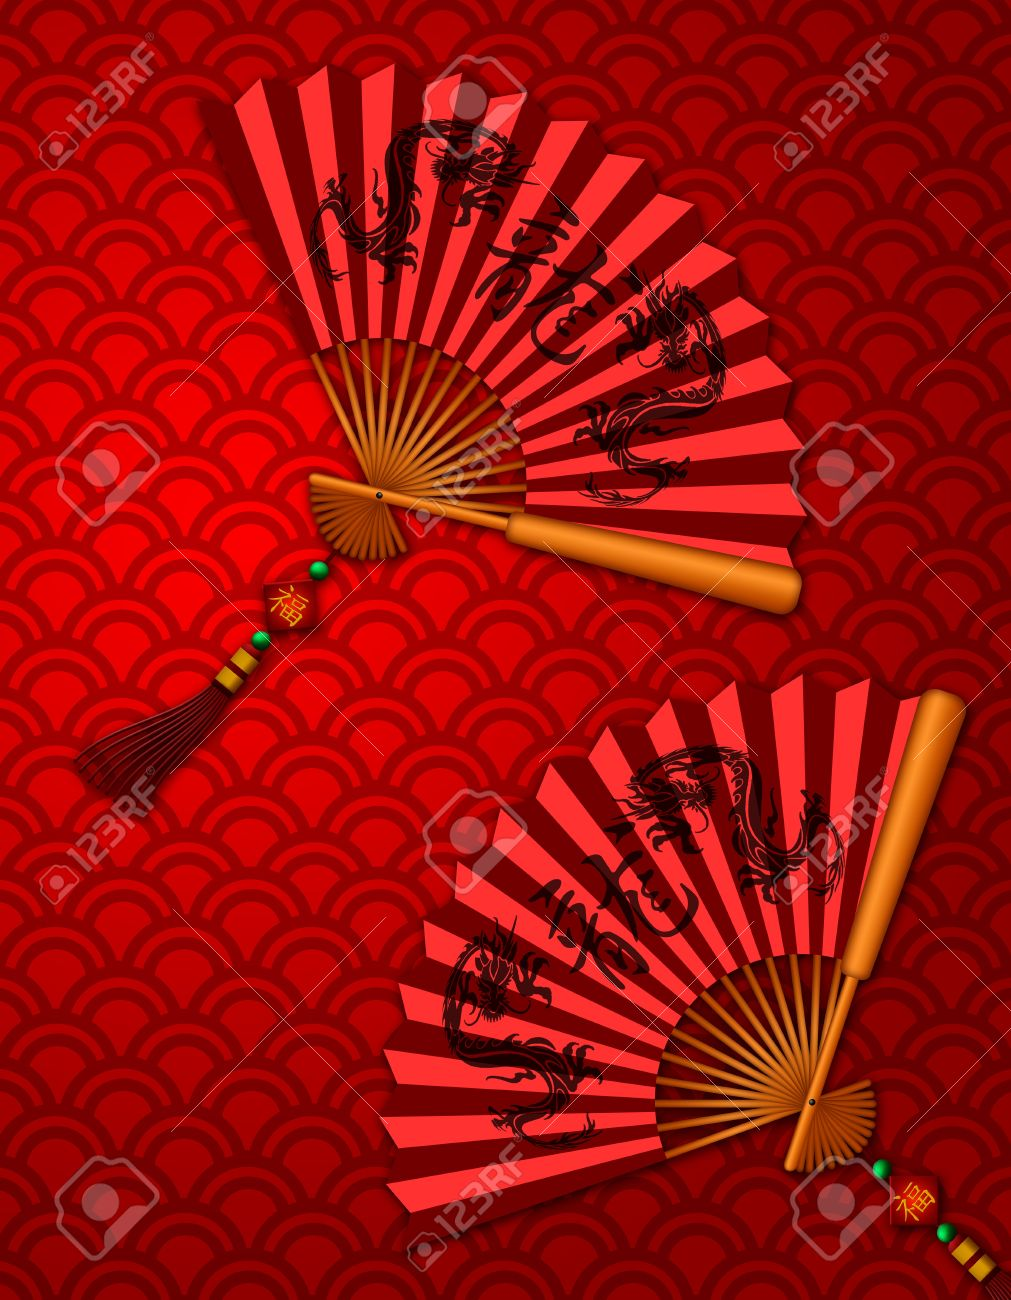 Chinese Fans with Dragon Text Calligraphy and Prosperity Word on Tag on Red Scales Background Illustration Stock Illustration - 11781483